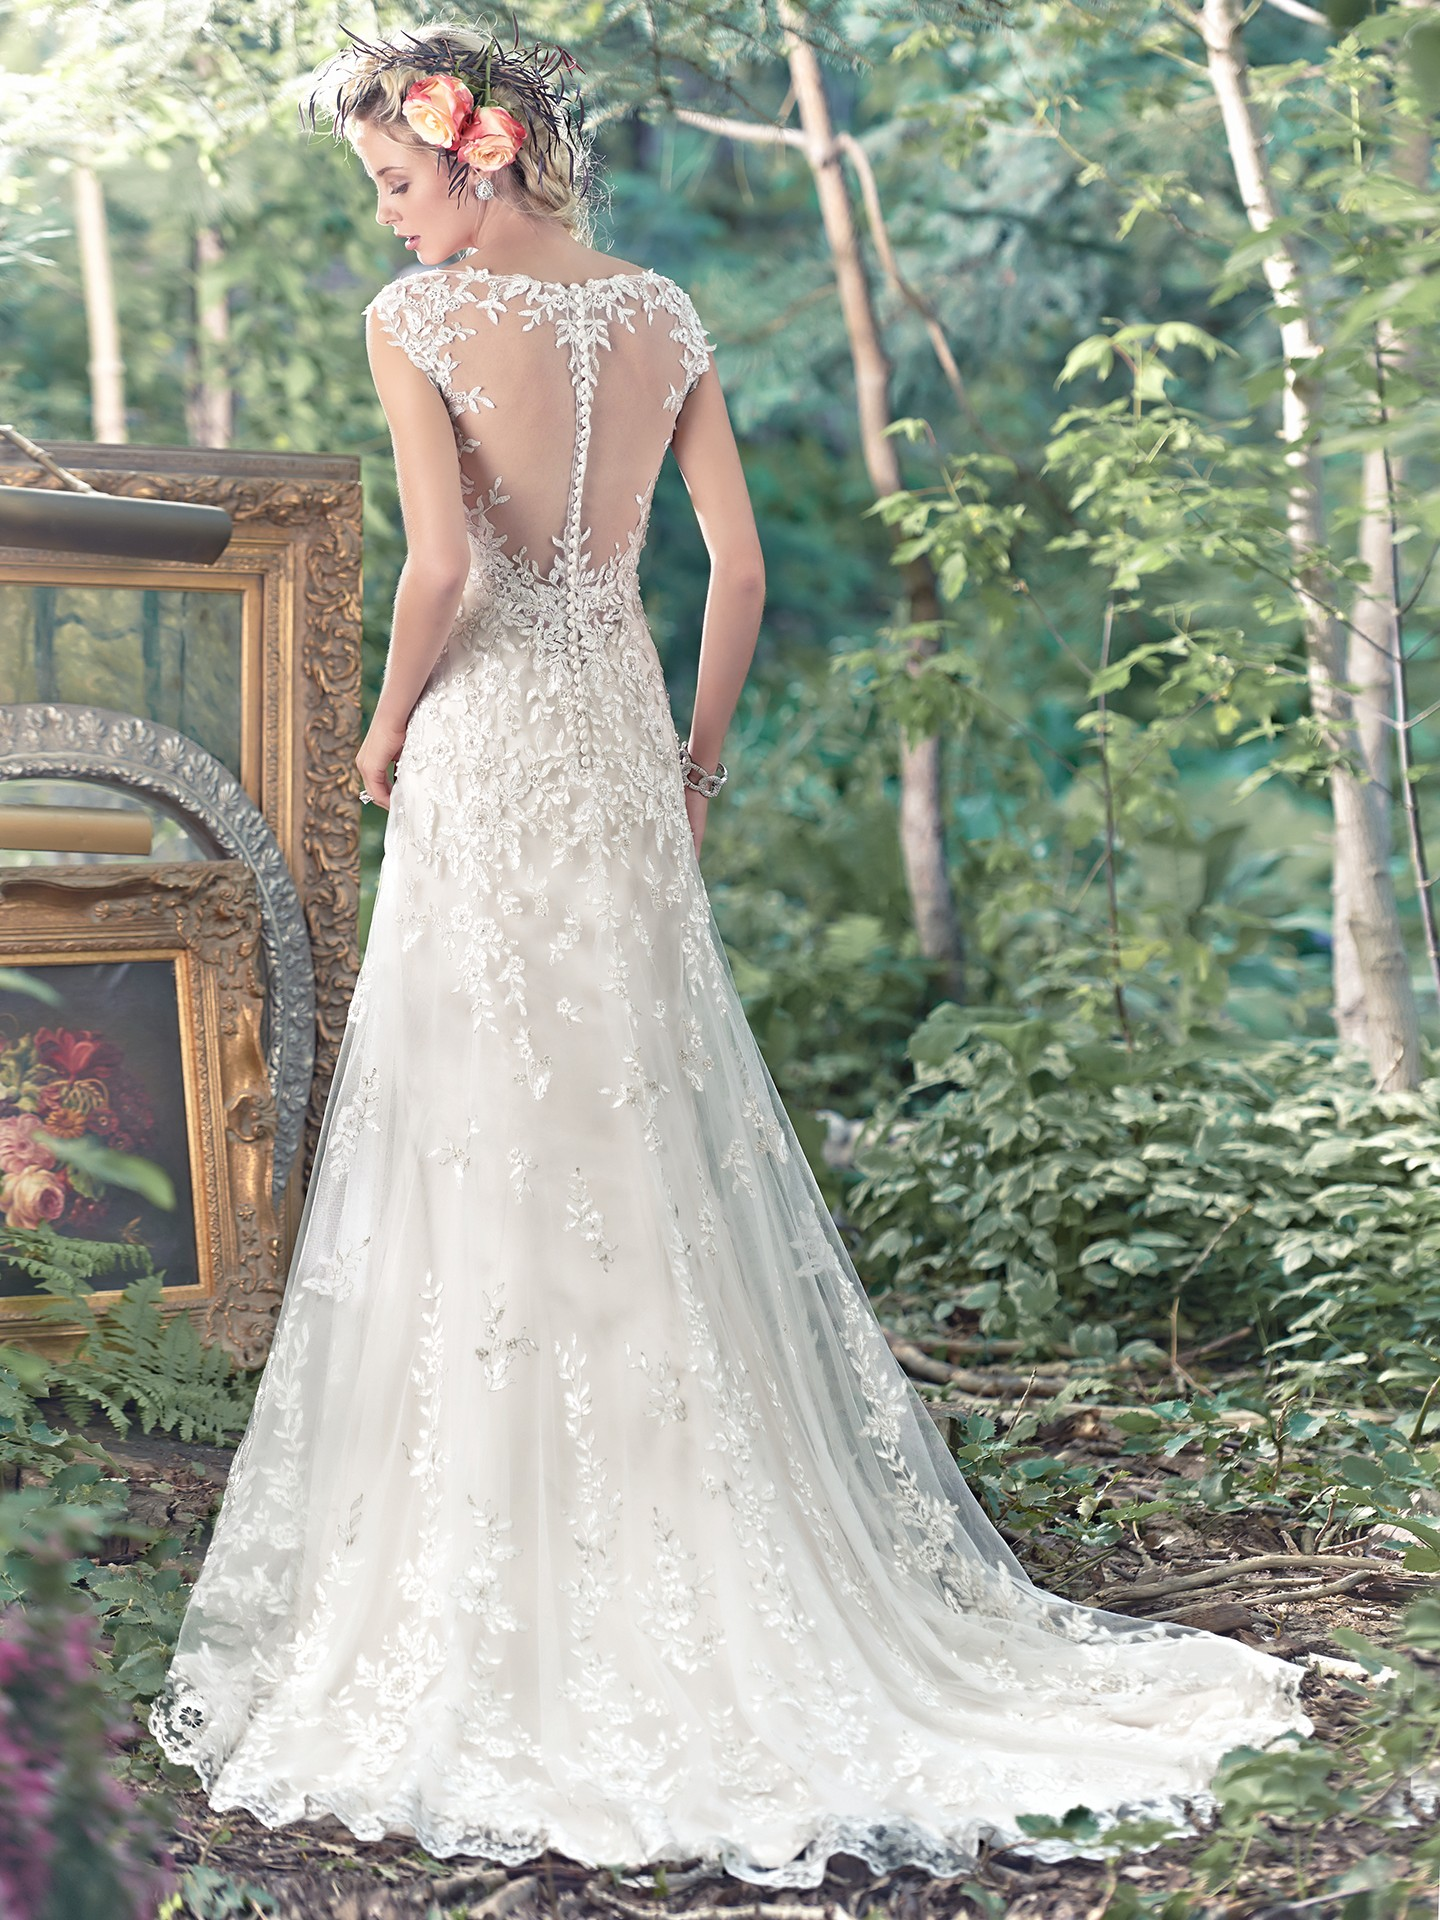 intrigue of illusion sleeves - Tami by Maggie Sottero